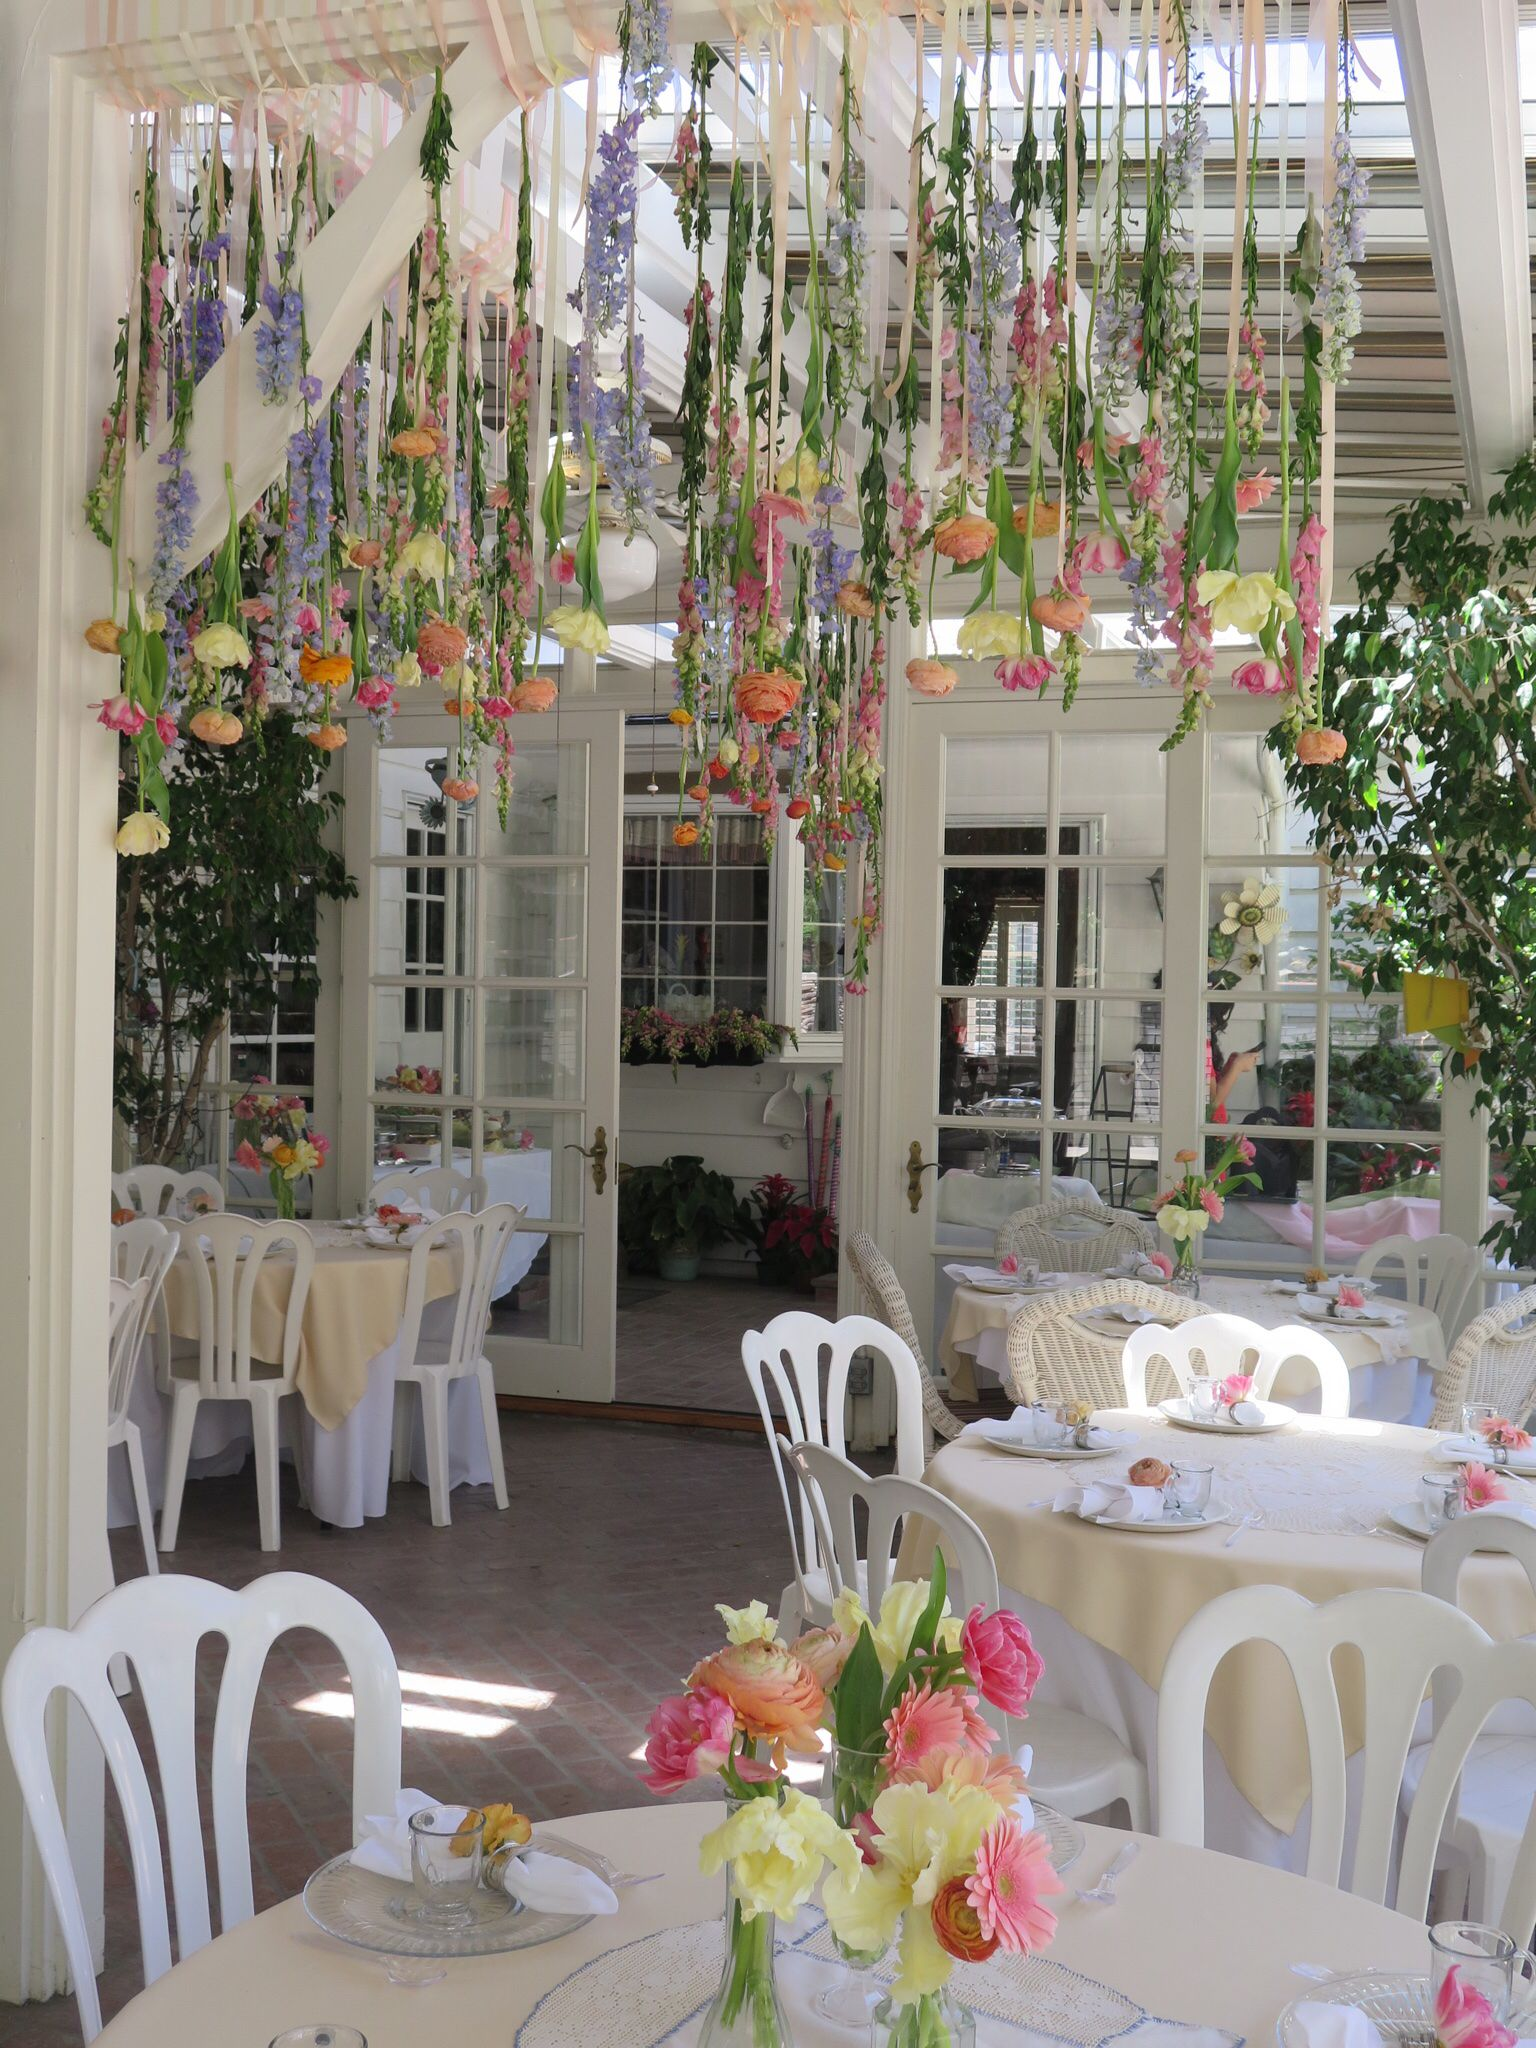 Wedding Decorations Chairs Receptions Dining Table Leather Chair Covers Garden Party - Bridal Shower Hanging Flowers | / Baby Showers Ladies Day Pinterest ...